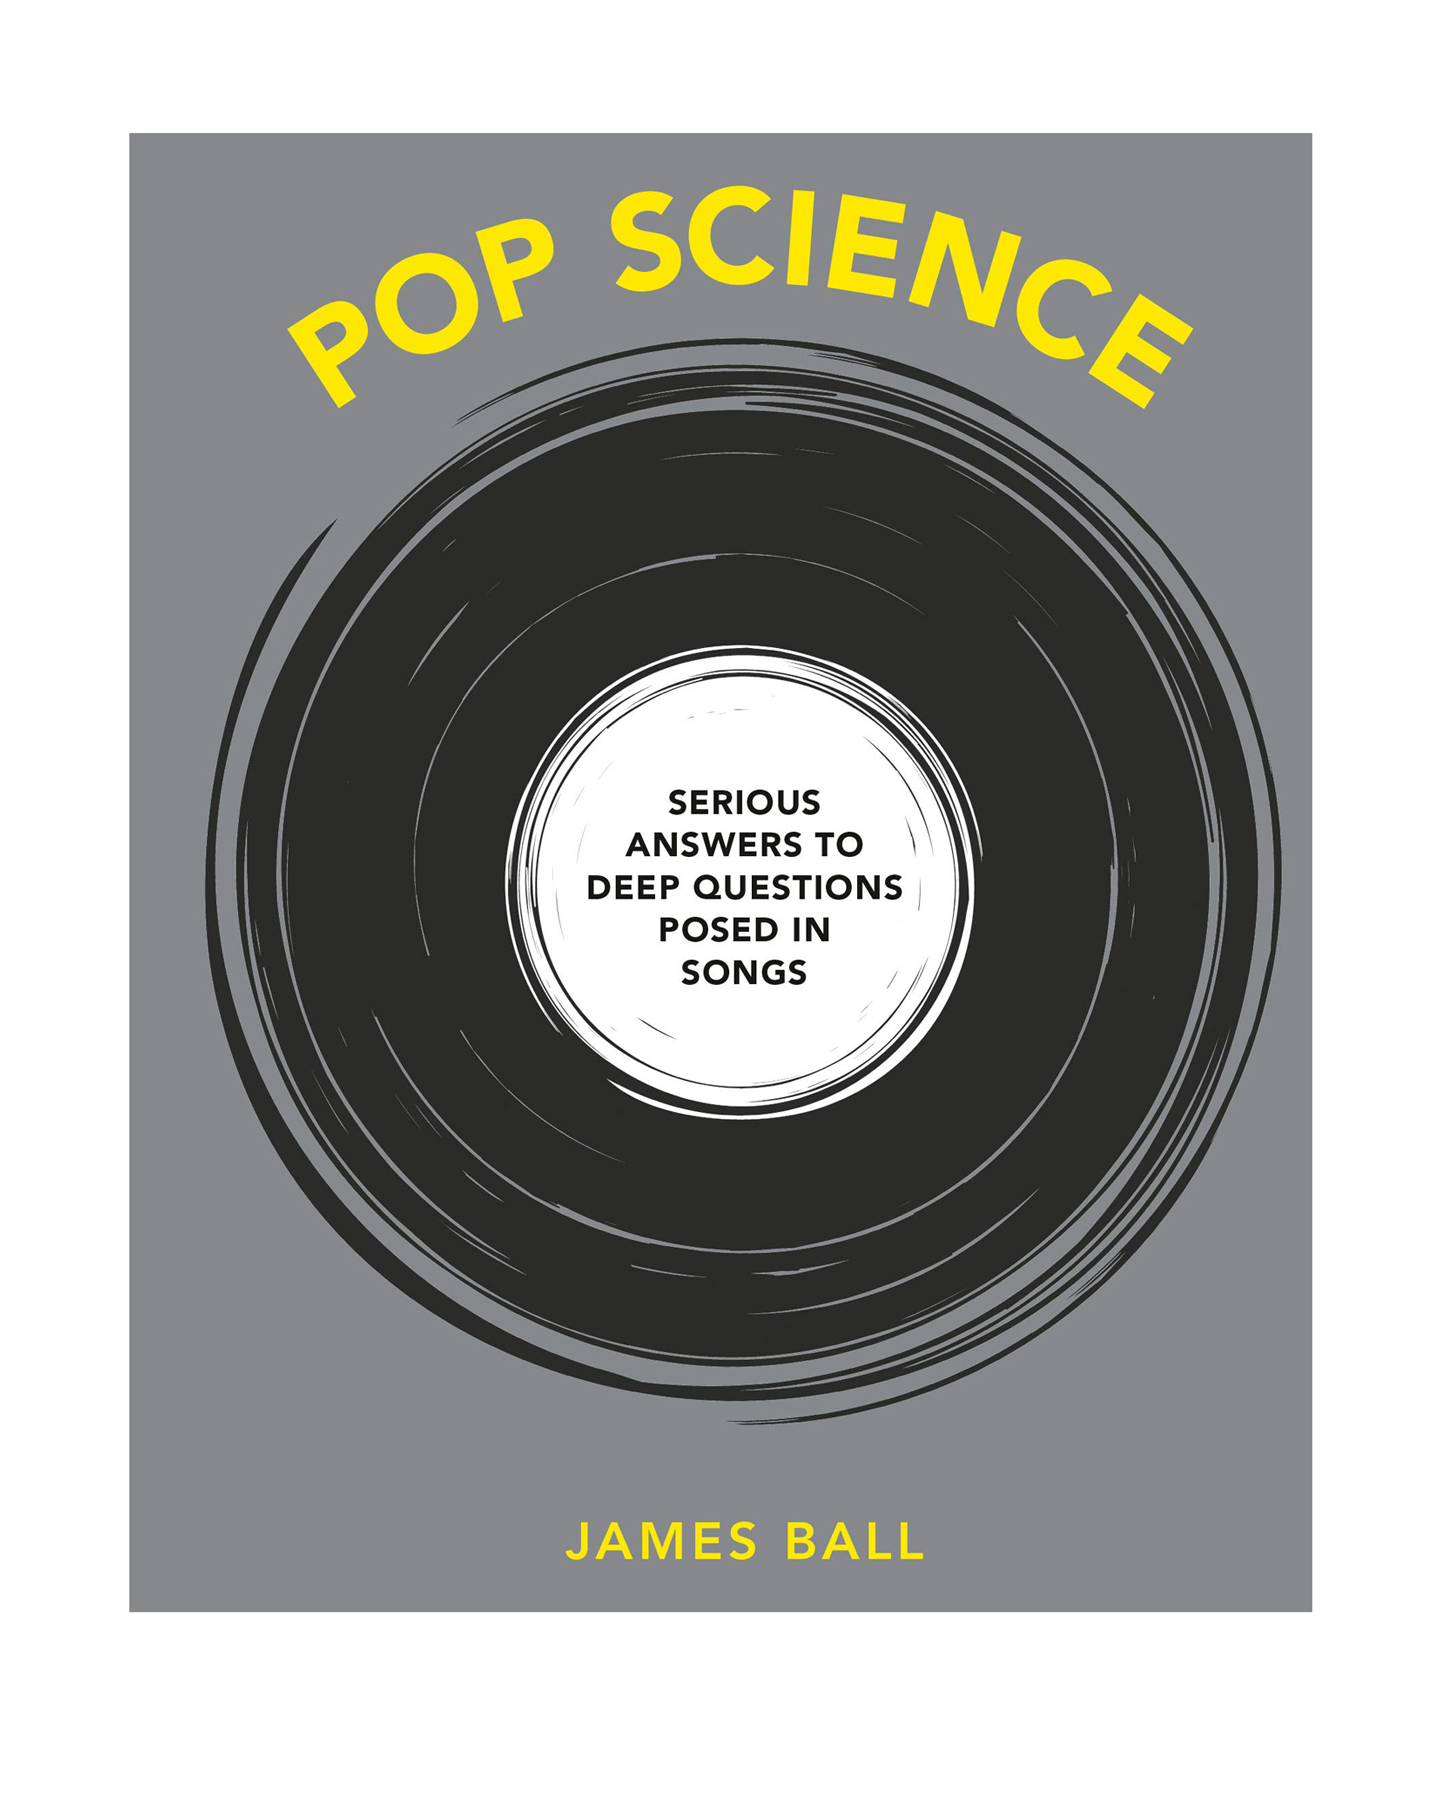 Cheap Christmas Gifts: Pop Science book by James Ball